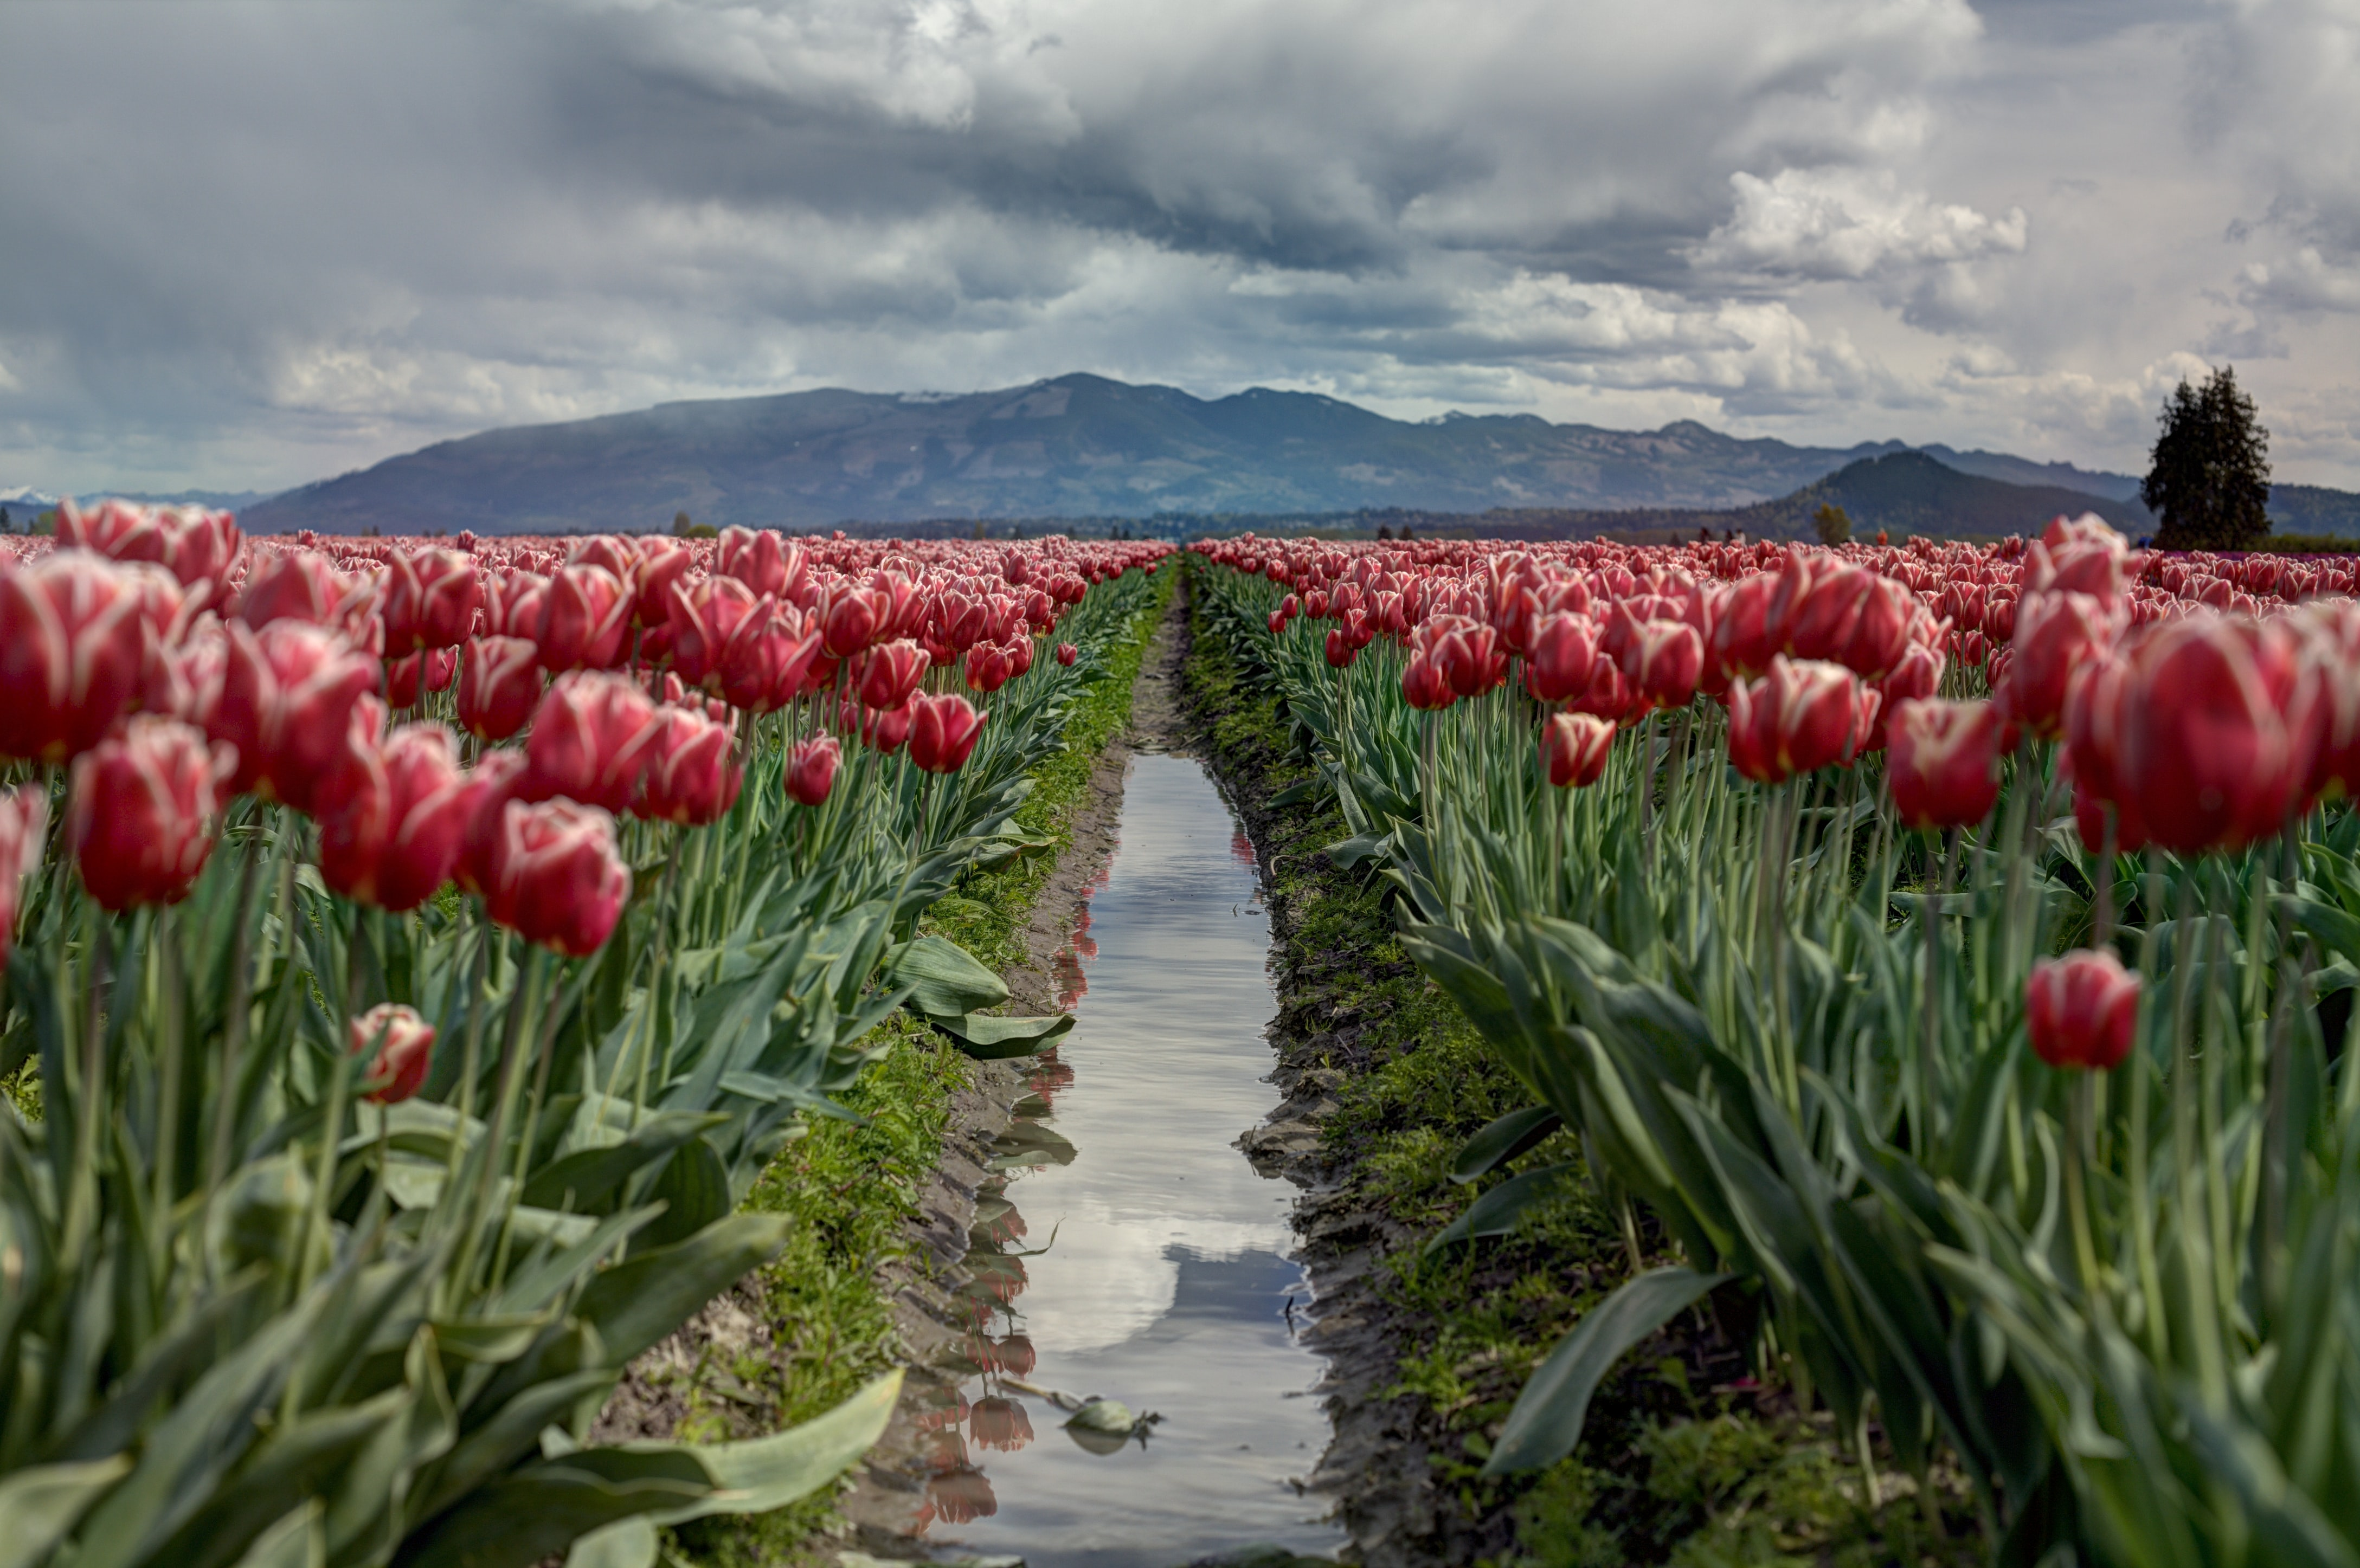 Walking path leads through a field of tulips to the mountains